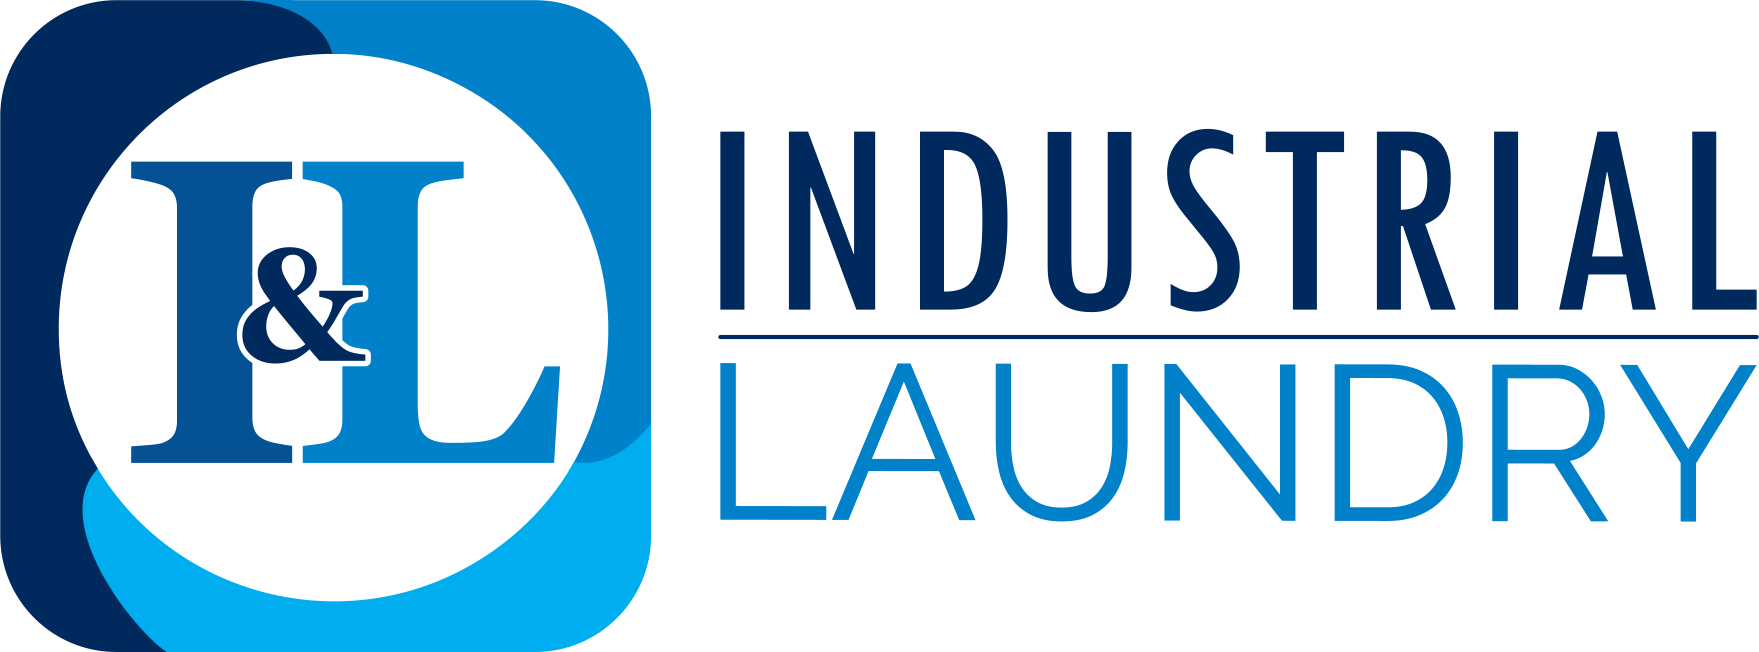 I and L Industrial Laundry